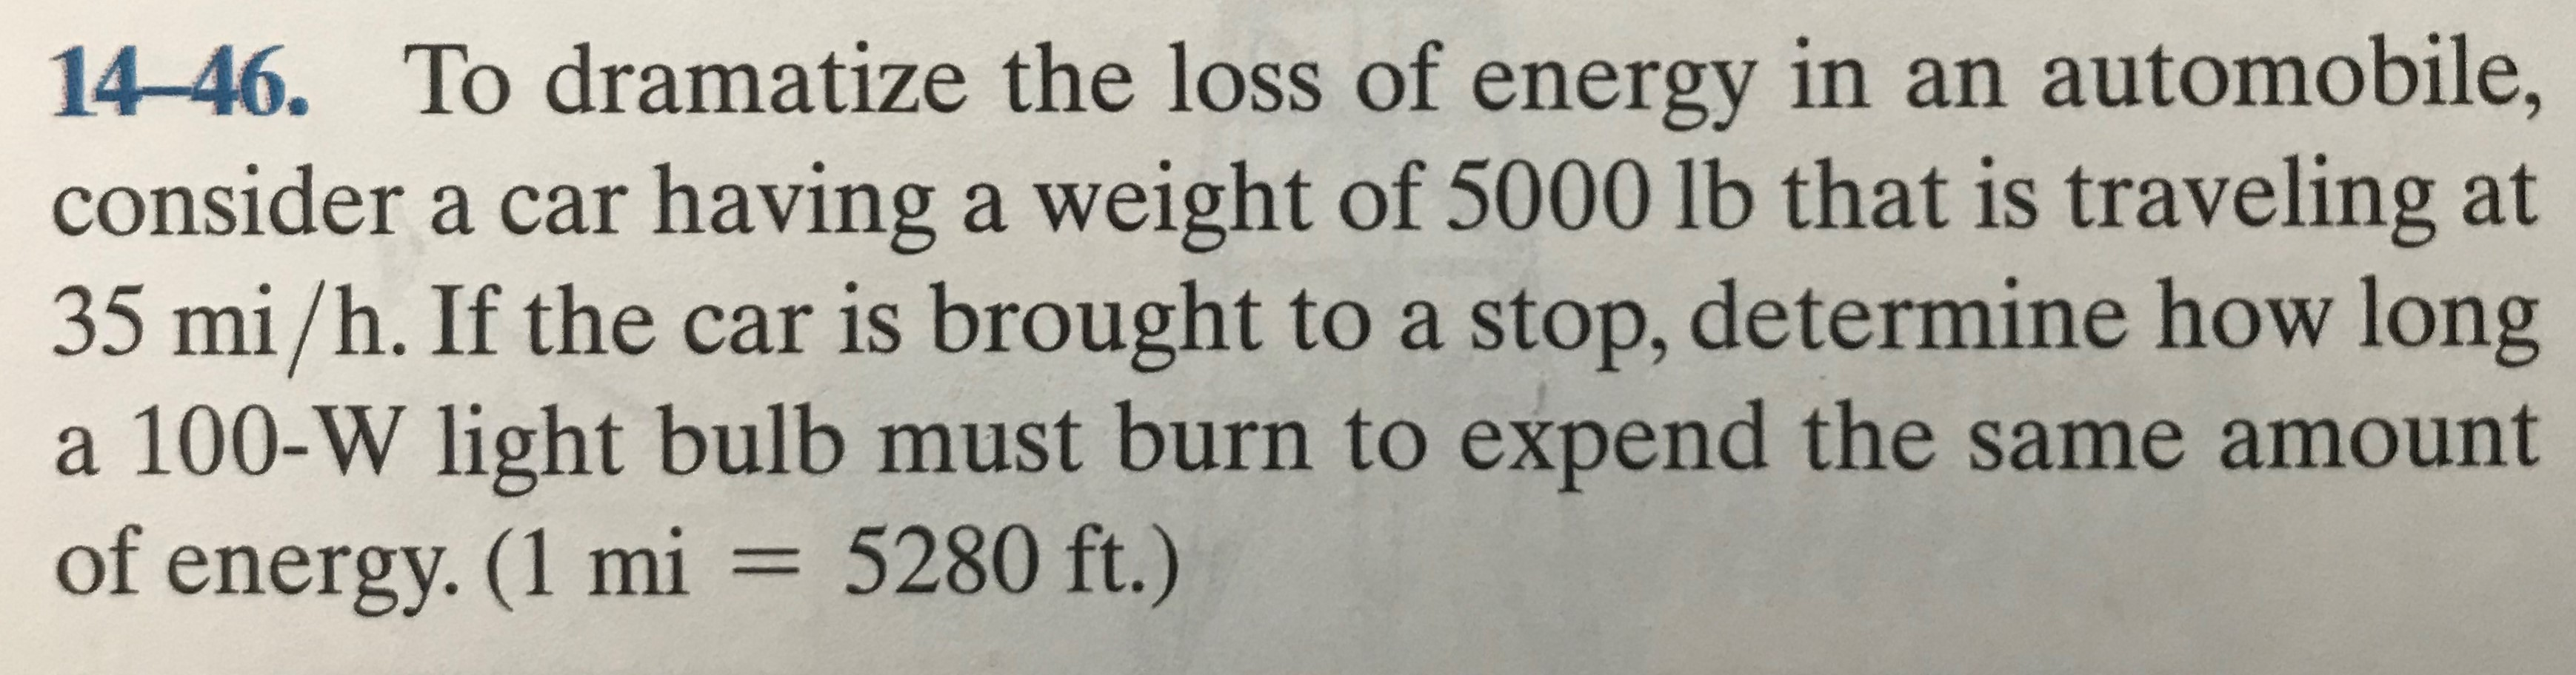 14-46. To dramatize the loss of energy in an automobile, consider a car having a weight of 5000 lb that is traveling at 35 mi/h. If the car is brought to a stop, determine how long a 100-W light bulb must burn to expend the same amount of energy. (1 mi = 5280 ft.)